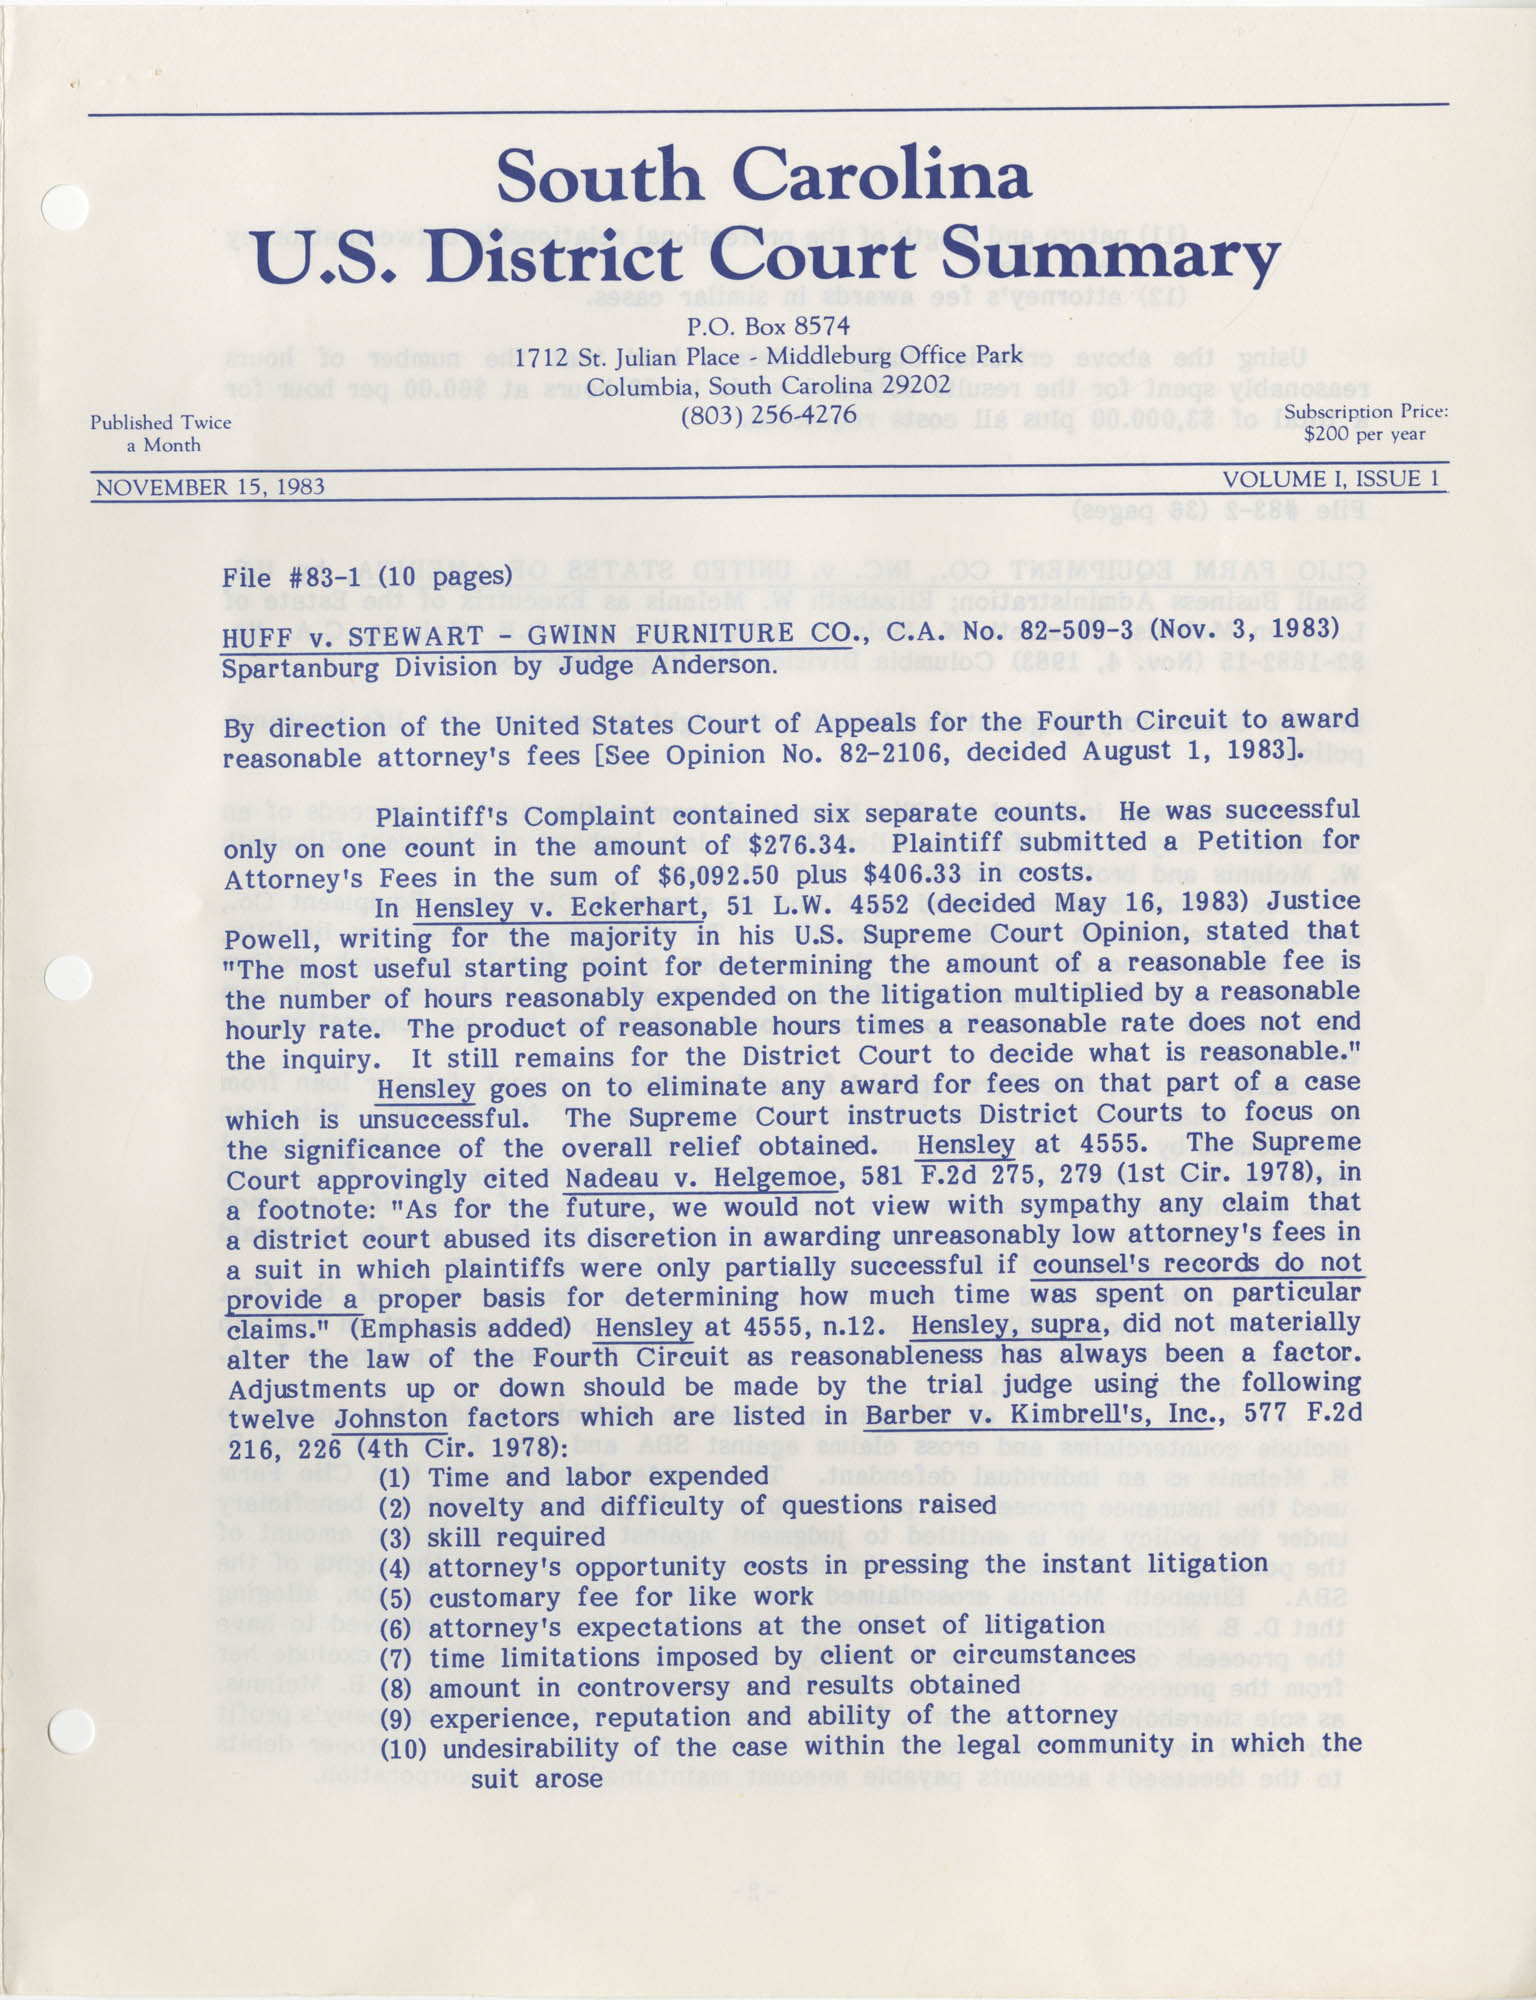 South Carolina U.S. District Court Summary, Vol. 1, Issue 1, November 15, 1983